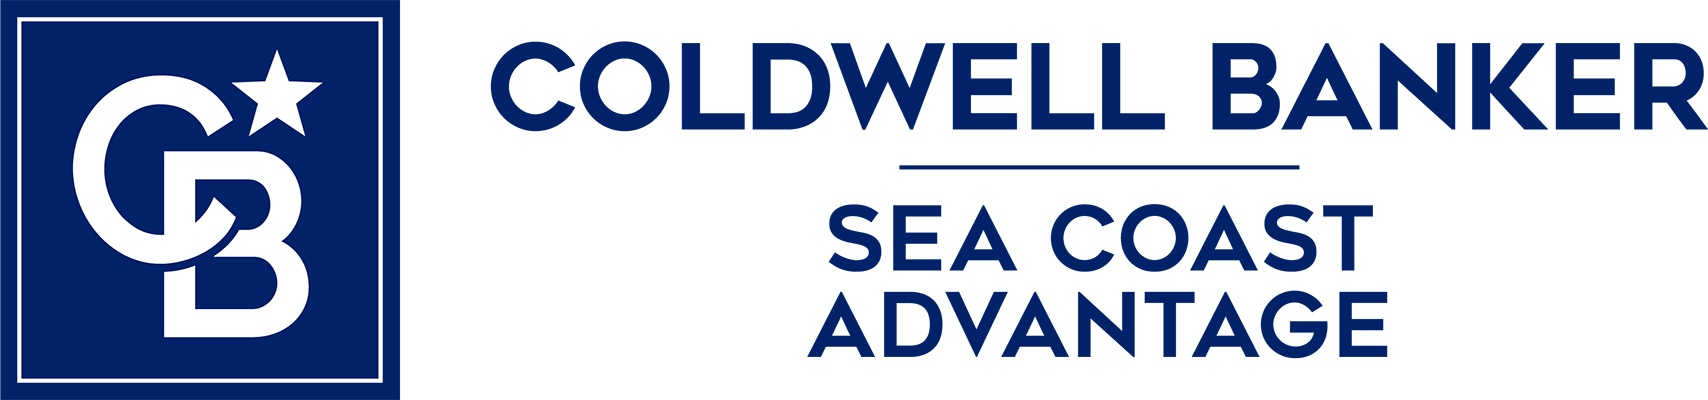 Ann Konetes - Coldwell Banker Sea Coast Advantage Realty